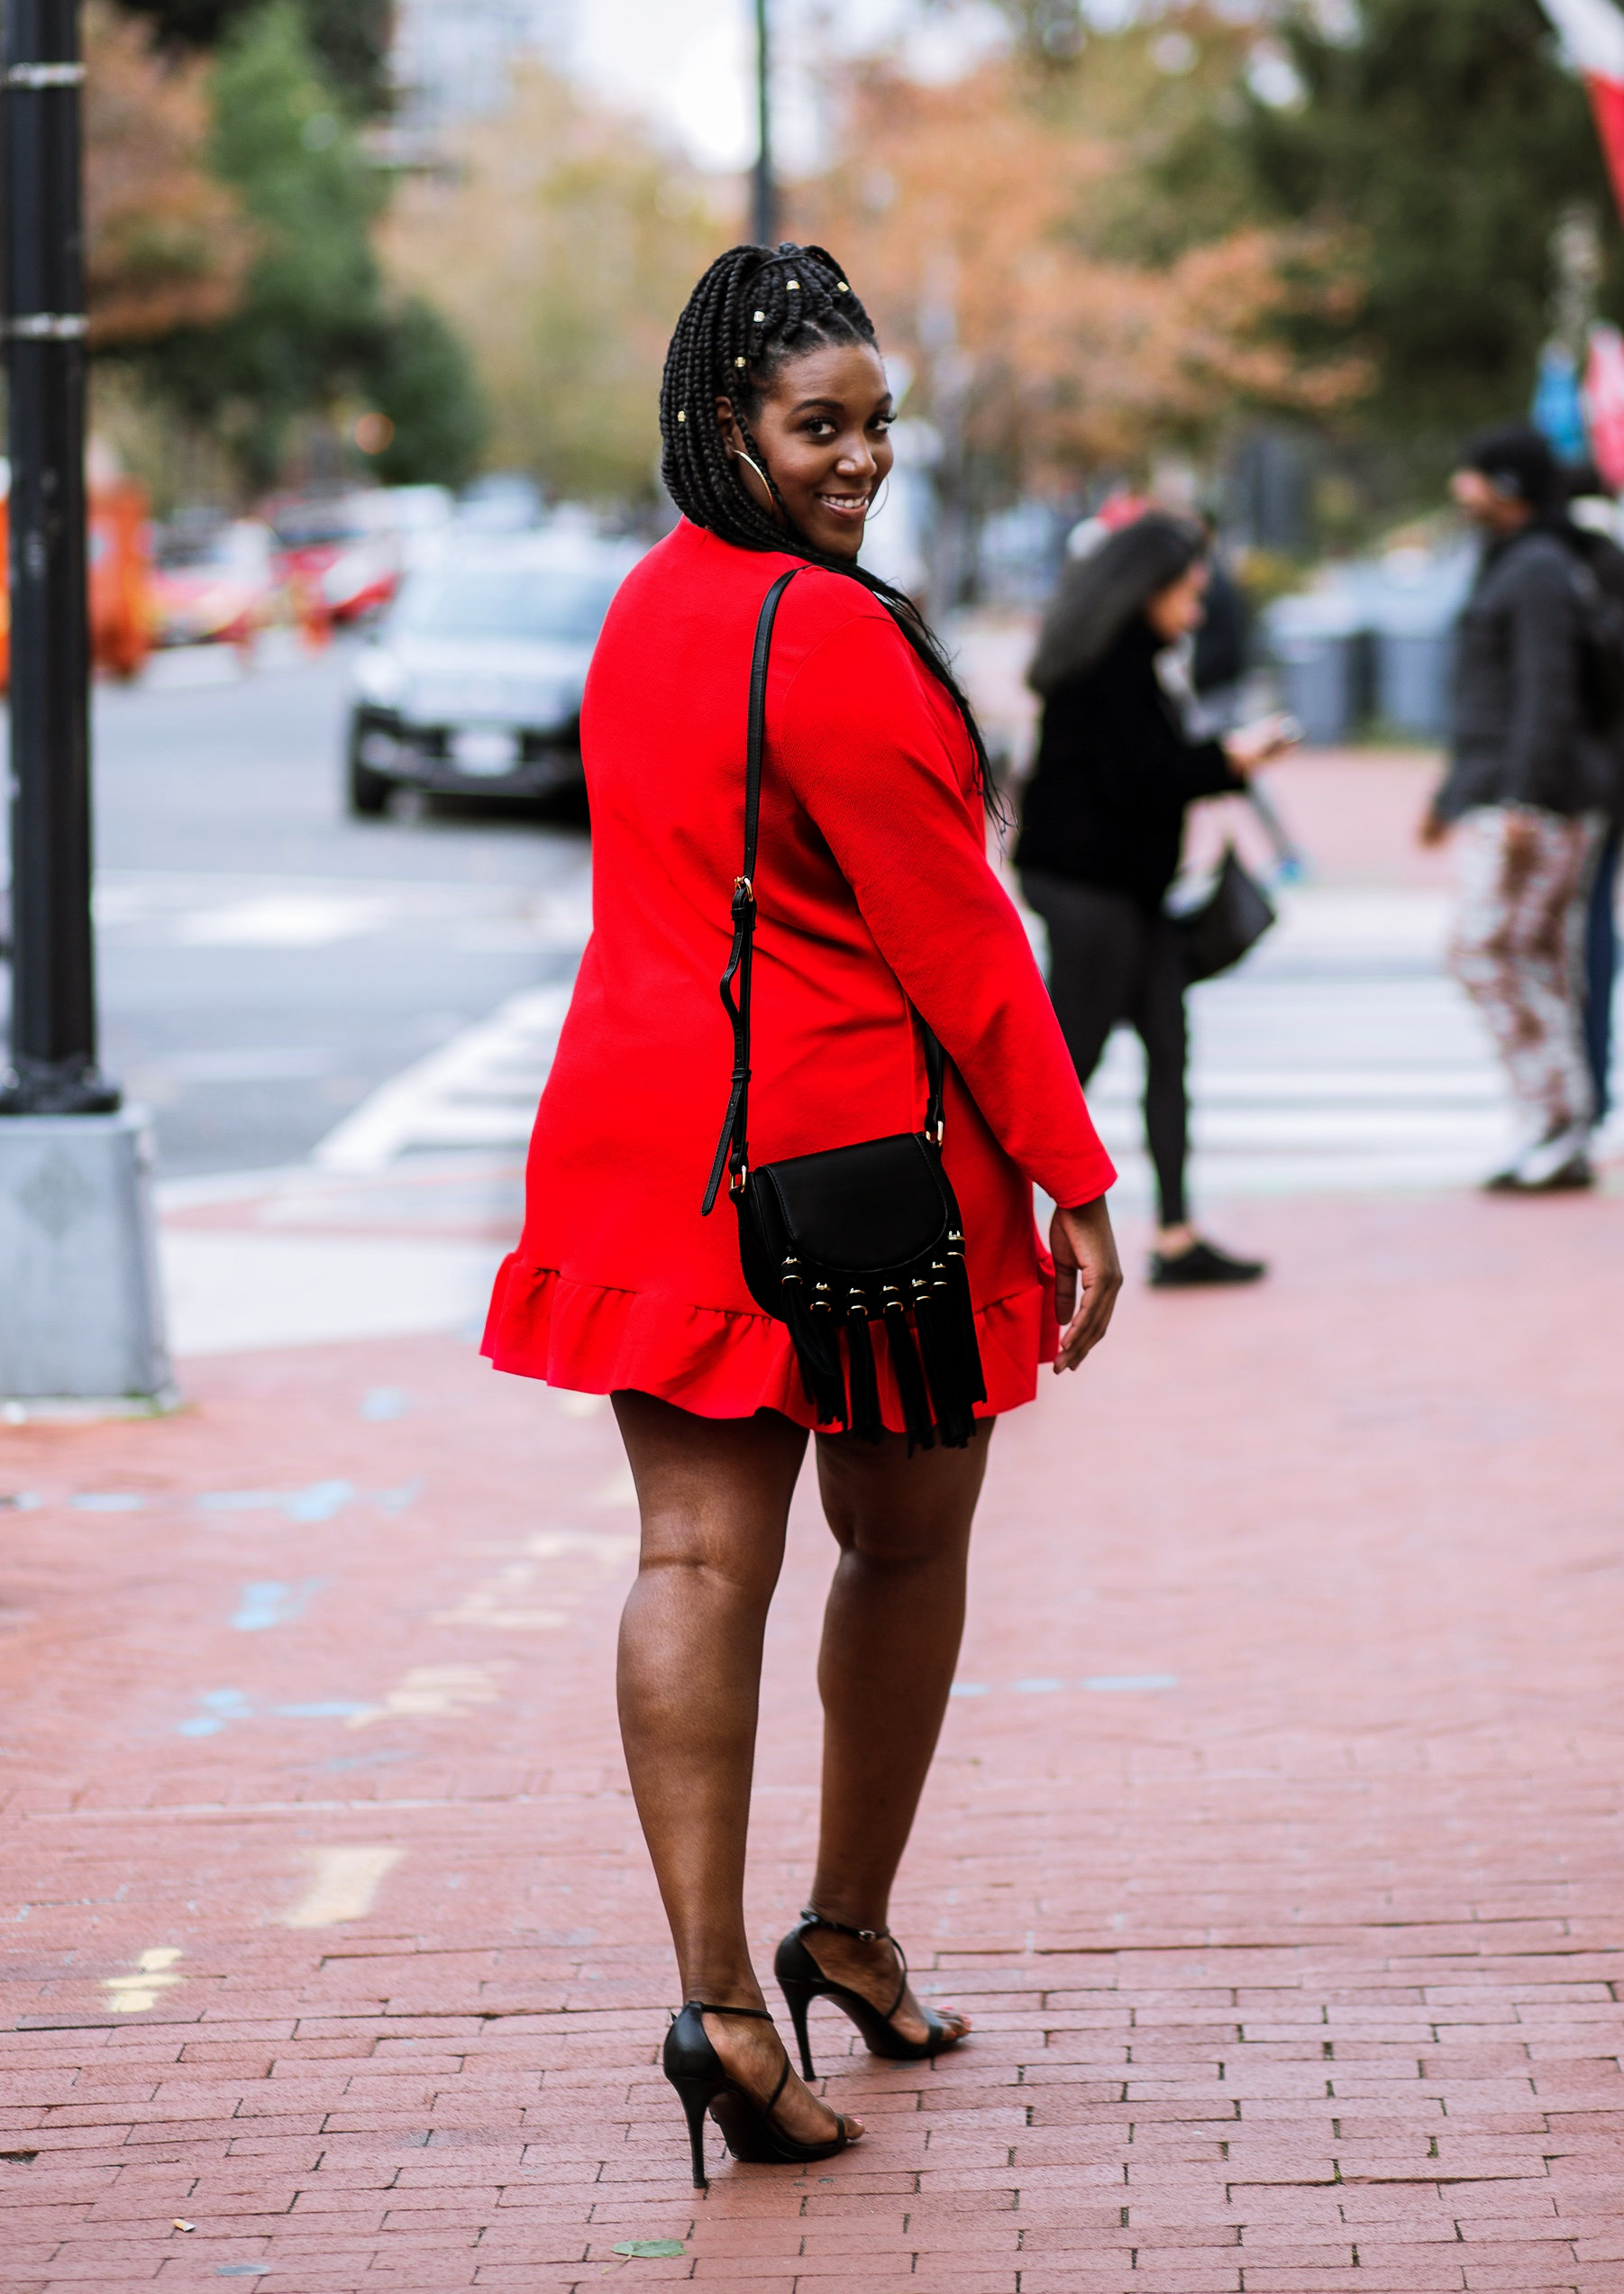 Charmant Style Red Holiday Look